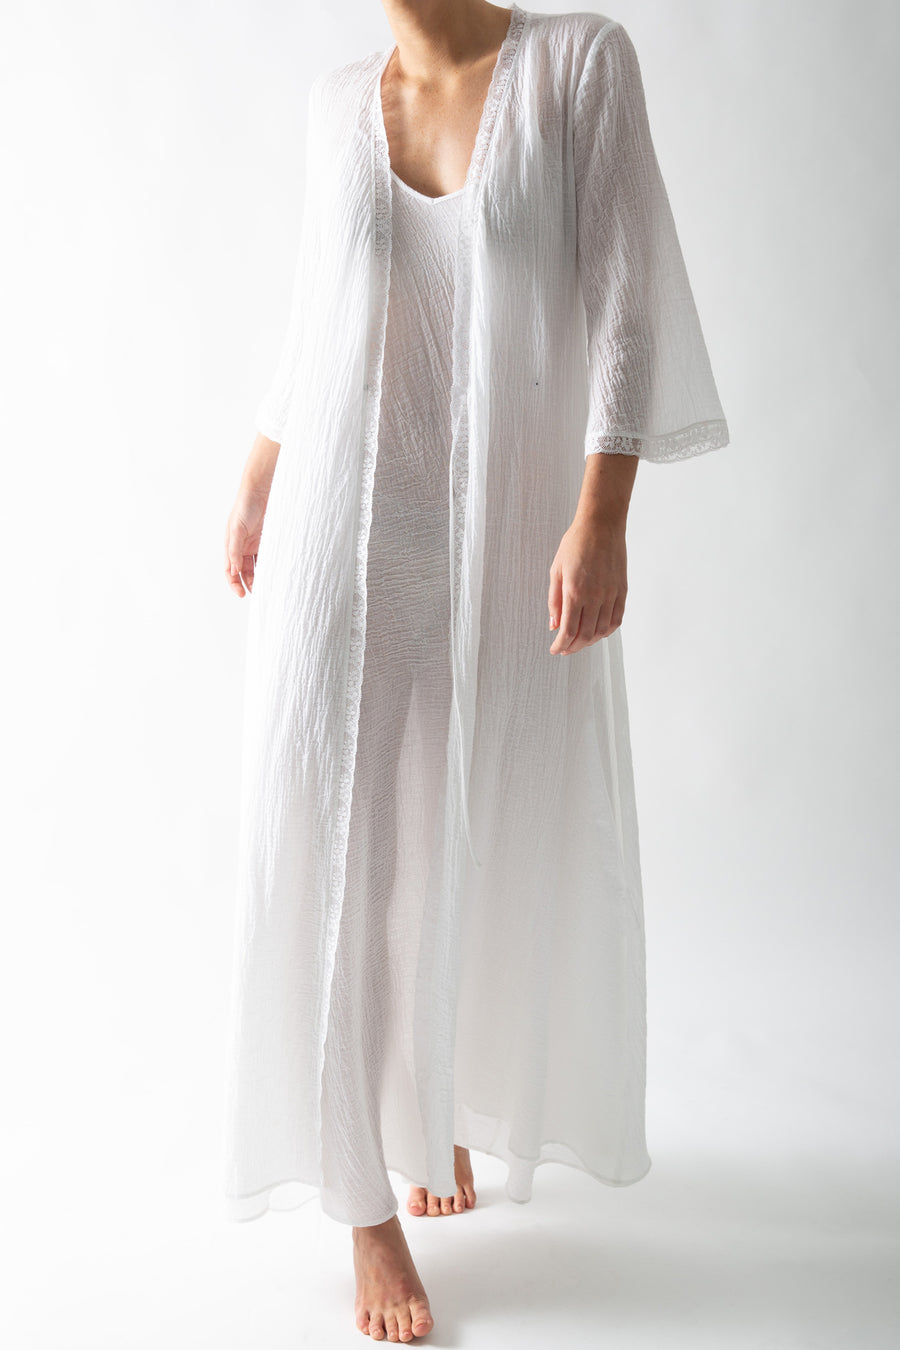 This is a photo of a woman wearing a white cotton gauze rope with wrap closure. There is lace trim along the seams and she wears it open with a white slip dress underneath.